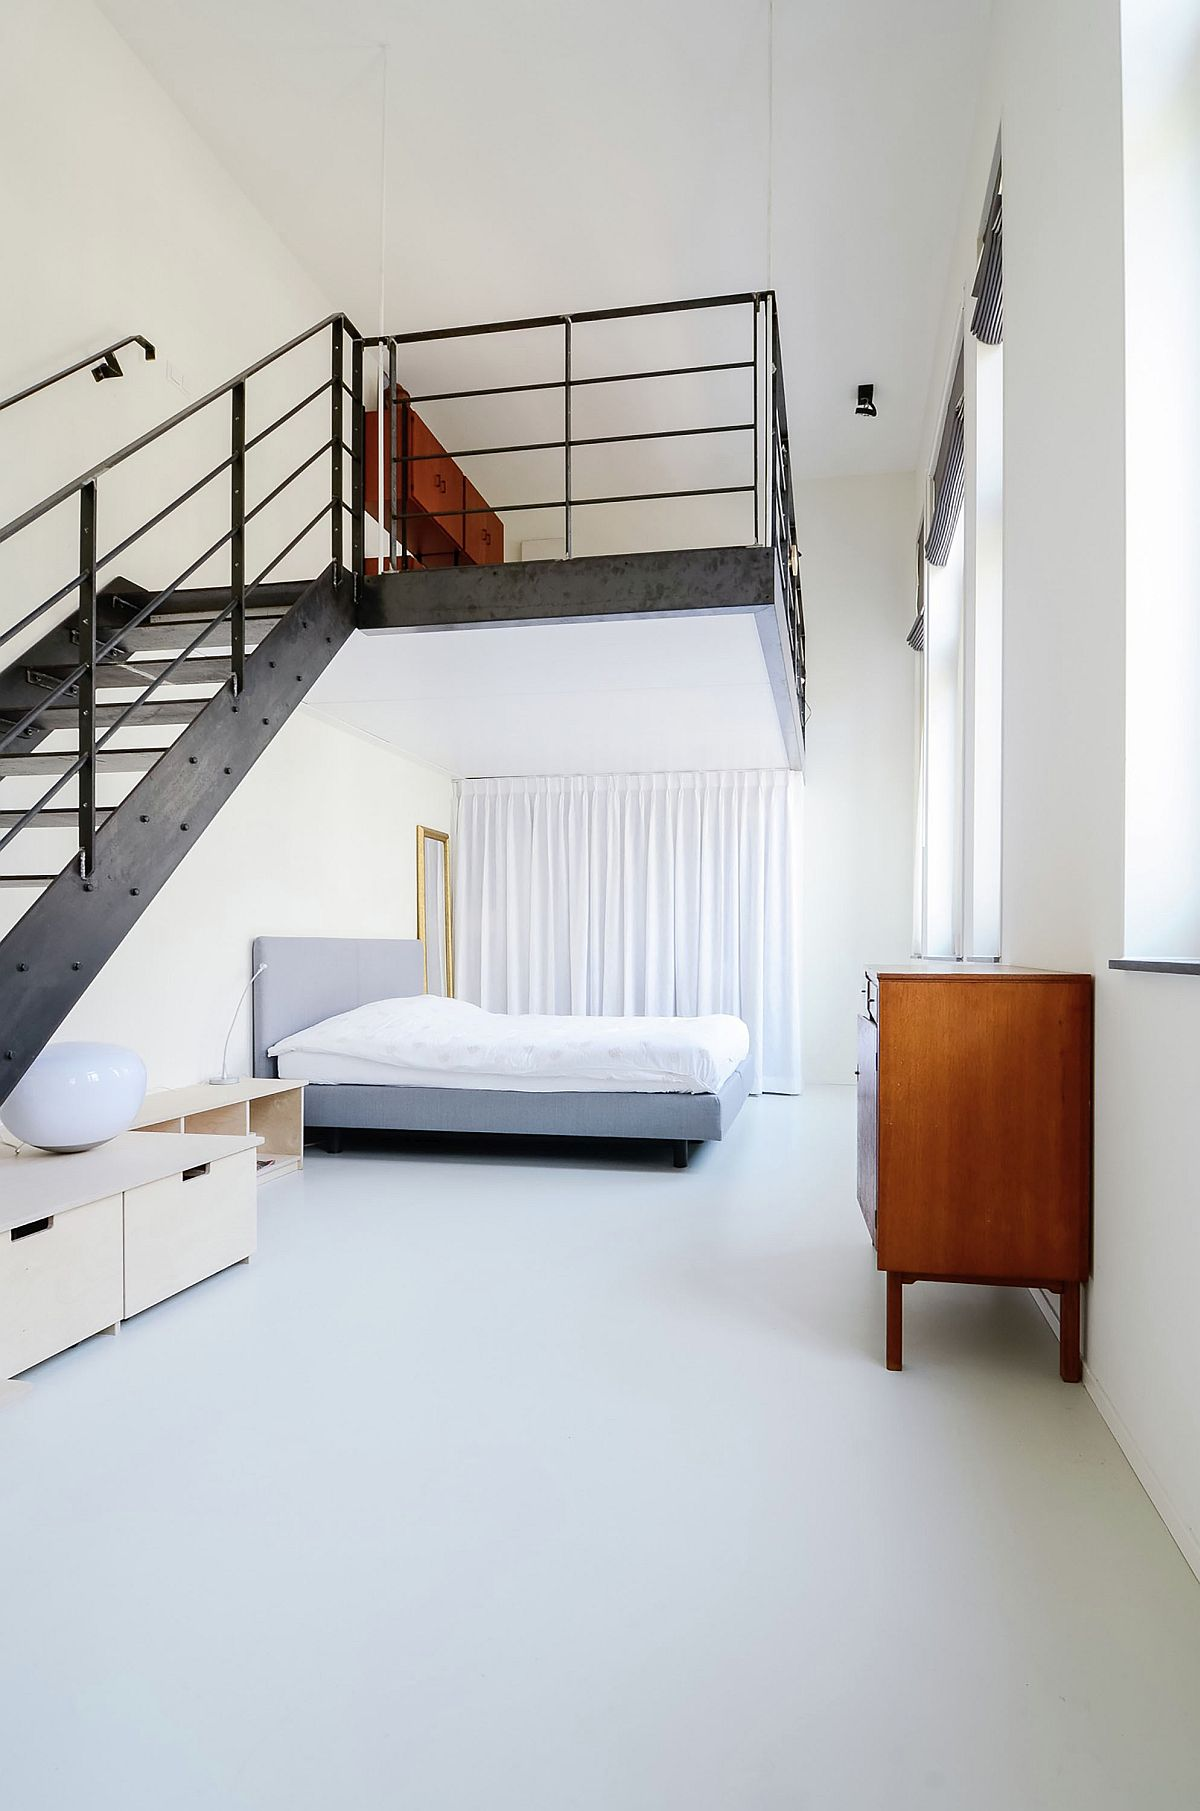 Loft level space above the bed inside the master bedroom